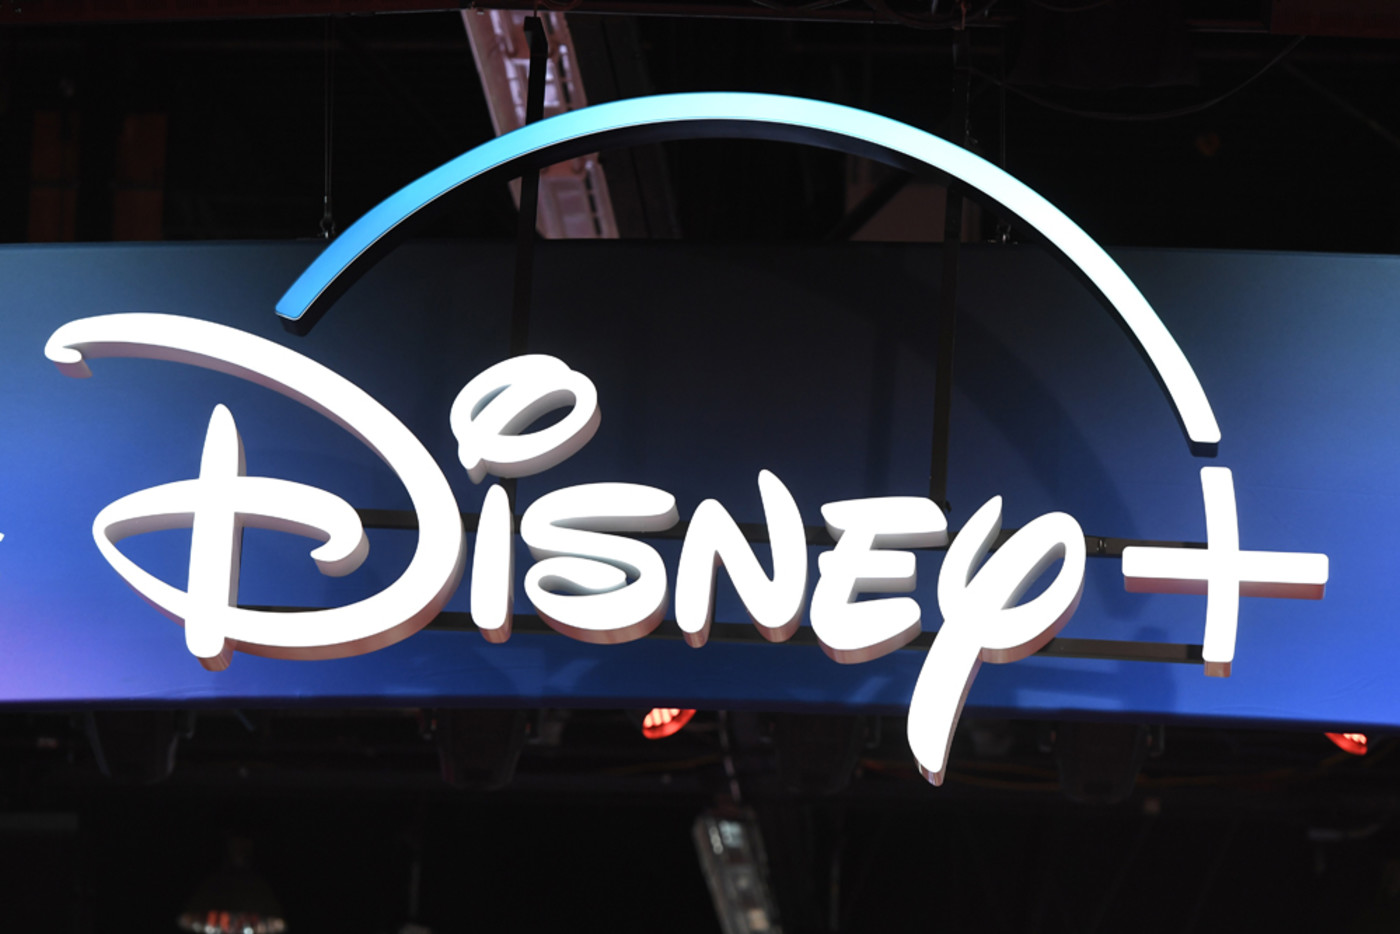 A Disney+ streaming service sign is pictured at the D23 Expo on August 23, 2019